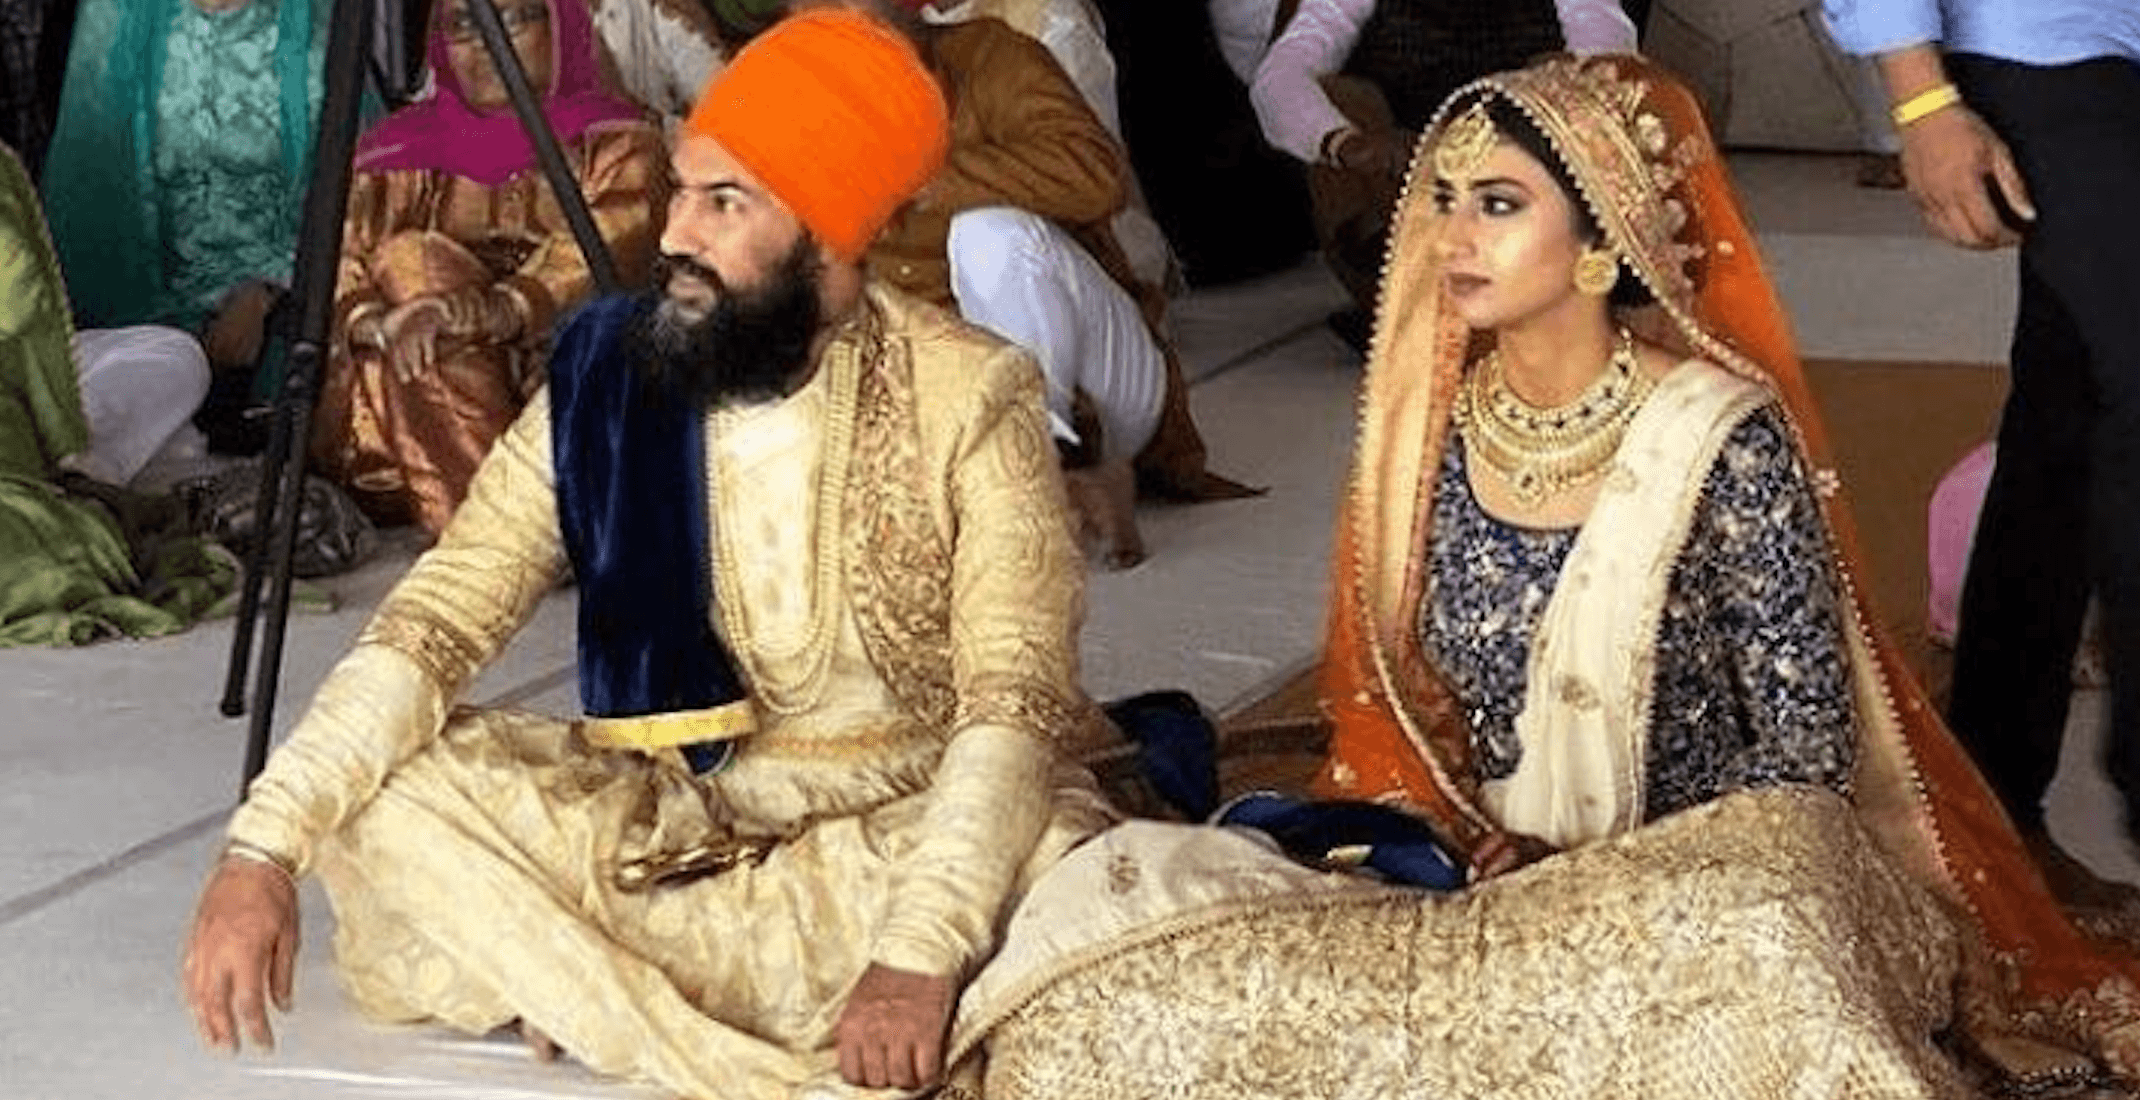 It's official: NDP leader Jagmeet Singh weds designer Gurkiran Kaur Sidhu (PHOTOS)